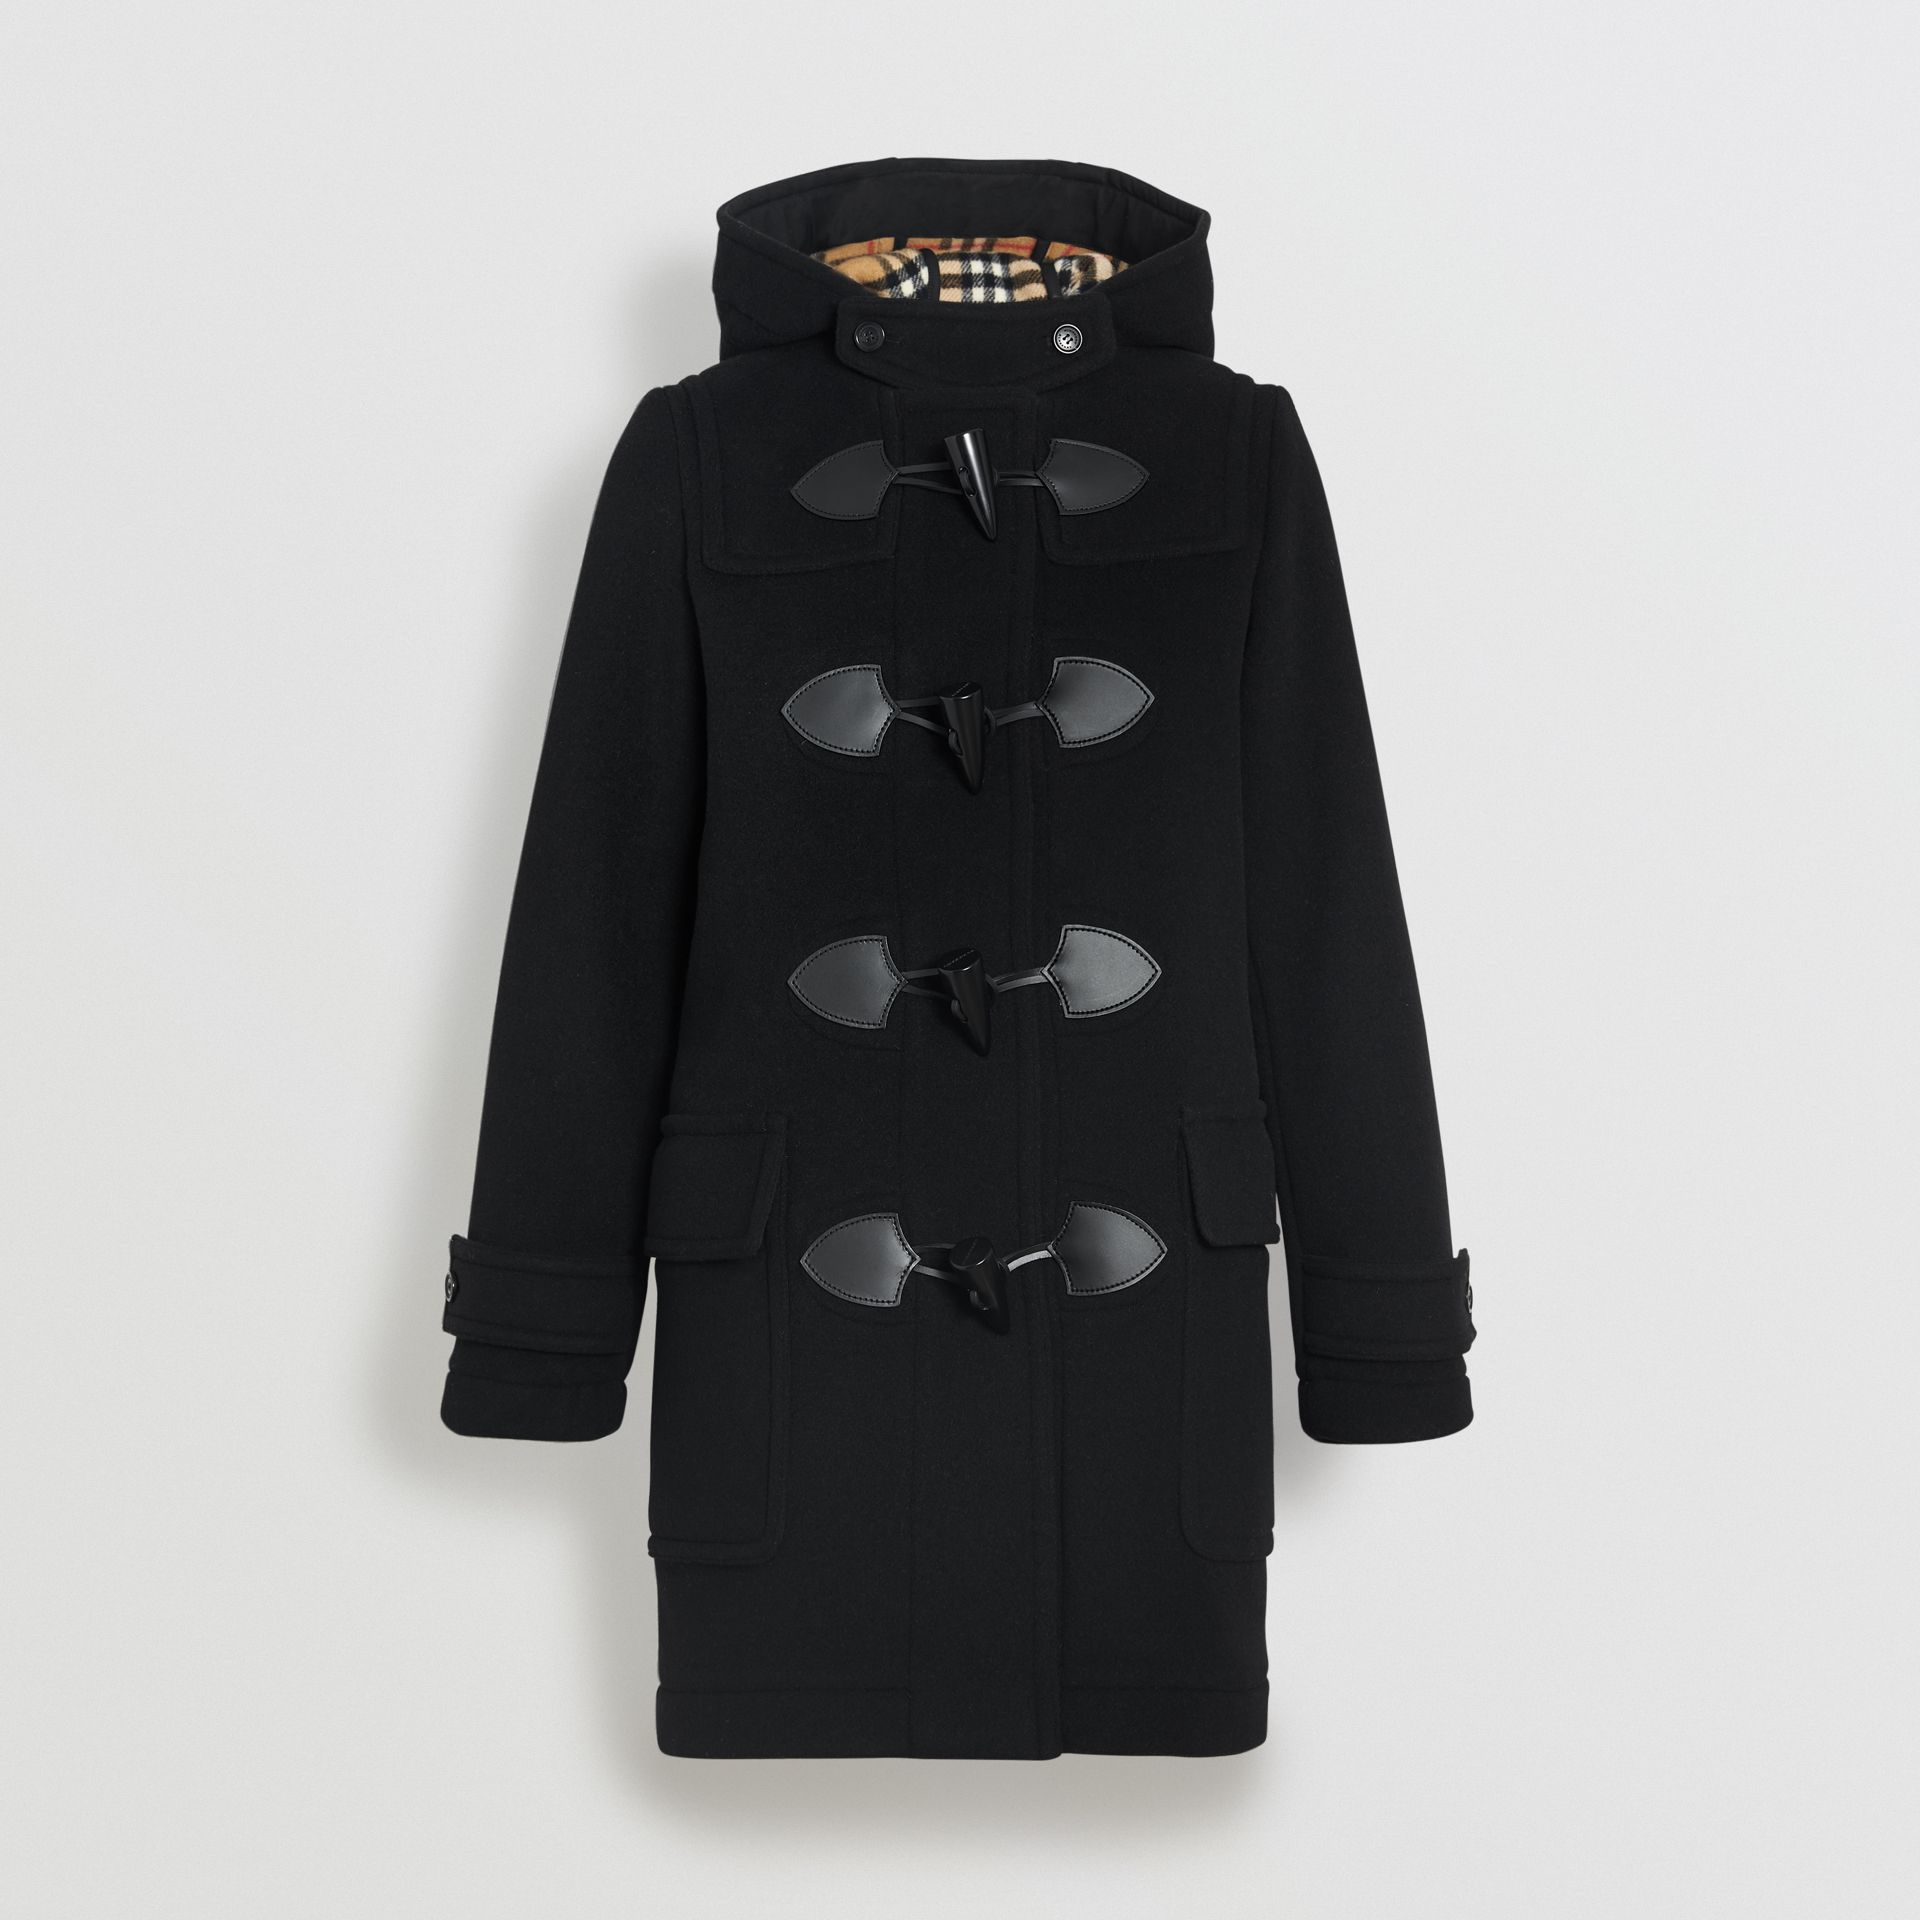 Wool Blend Duffle Coat in Black - Women | Burberry Hong Kong - gallery image 3